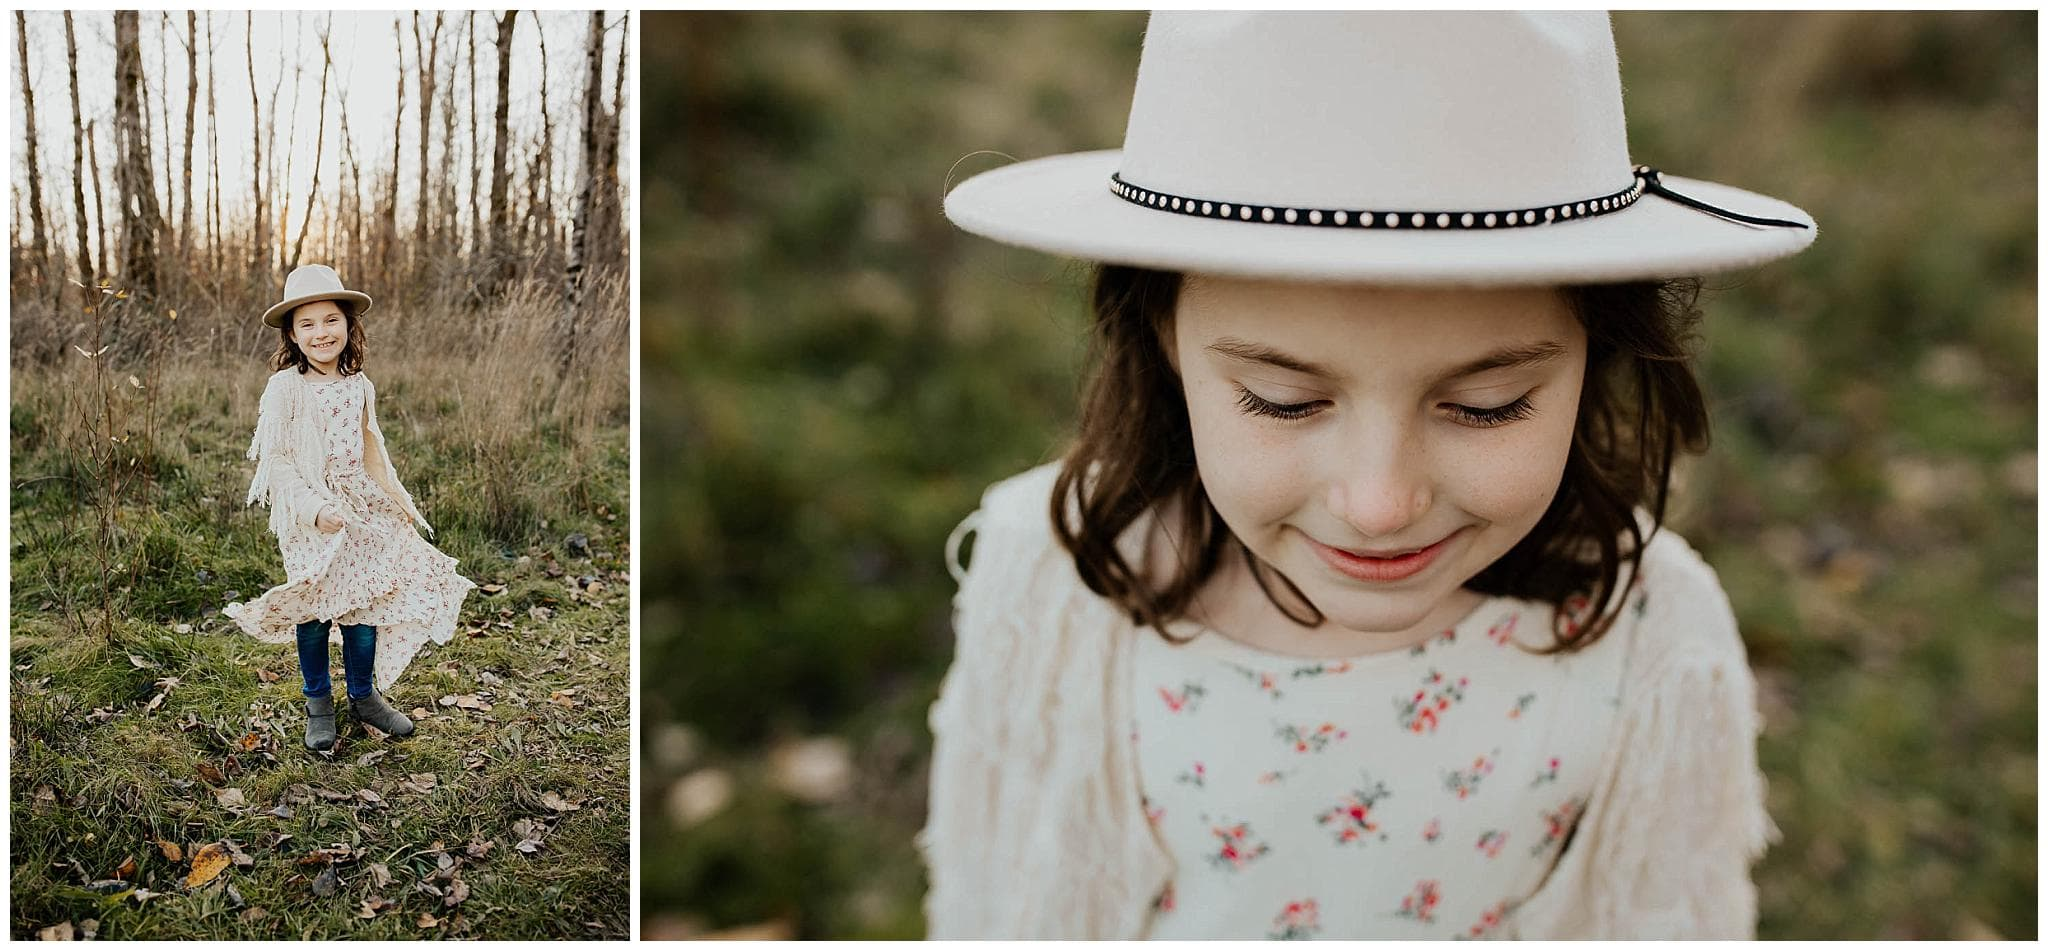 Little girl wearing a hat and floral dress smiling